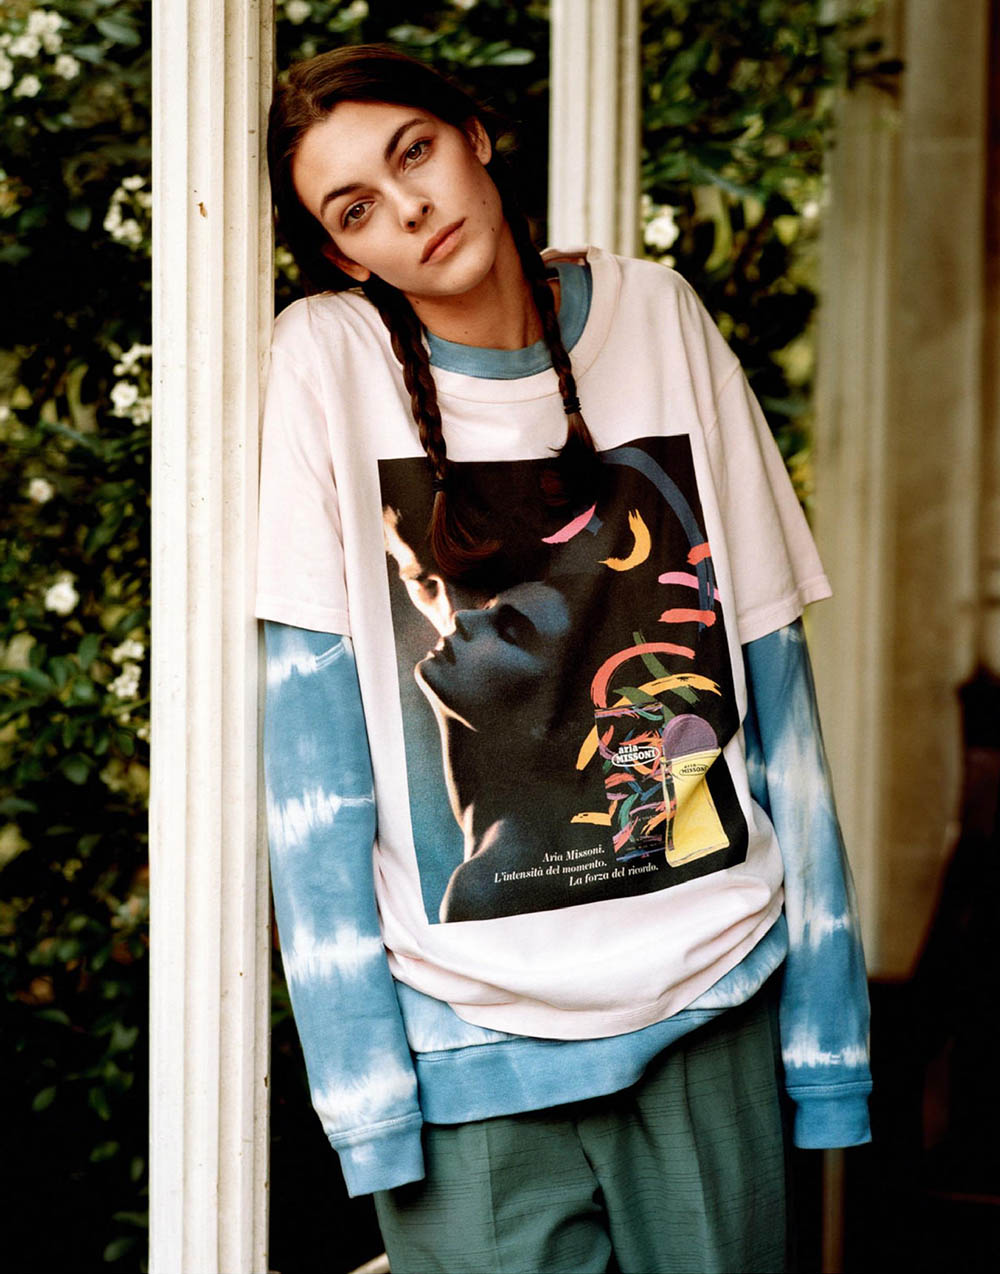 Vittoria Ceretti, Abby Champion and others by Alasdair McLellan for Vogue Paris February 2020